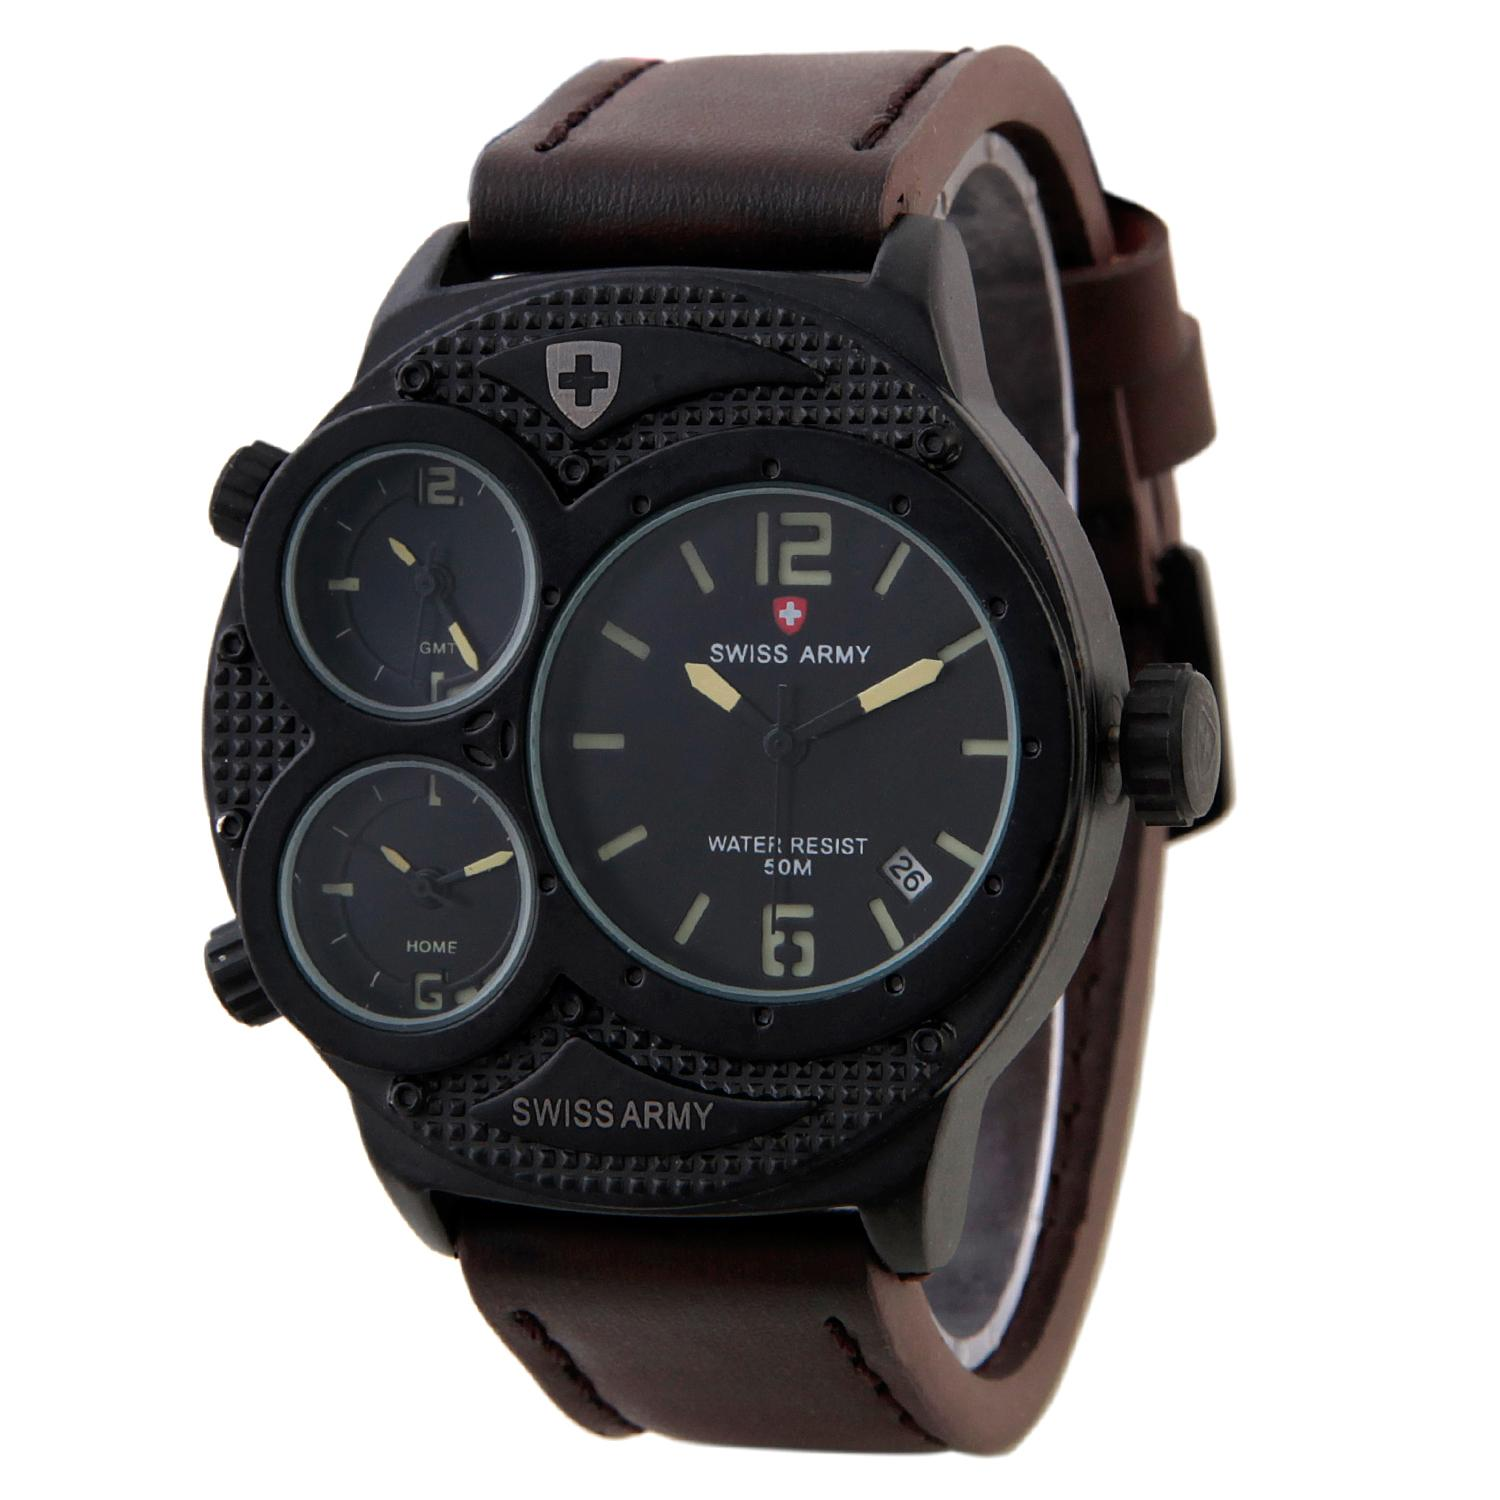 Swiss Army Triple Time Series - Cokelat - Kulit - SA 1060M BL DA BRW